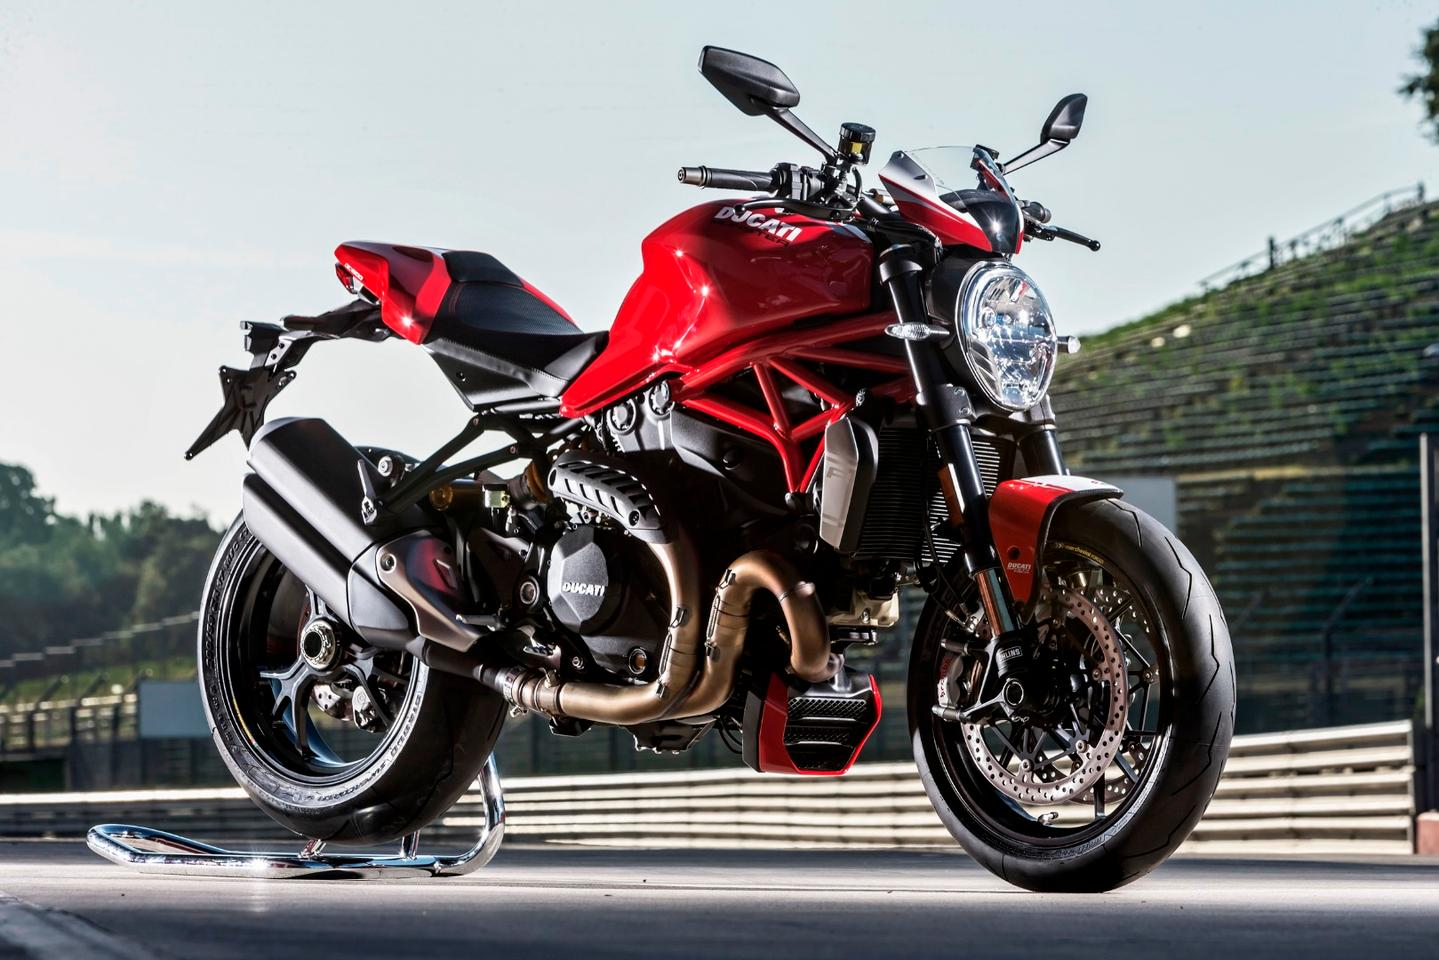 The 2016 Monster 1200 R in Ducati Red livery